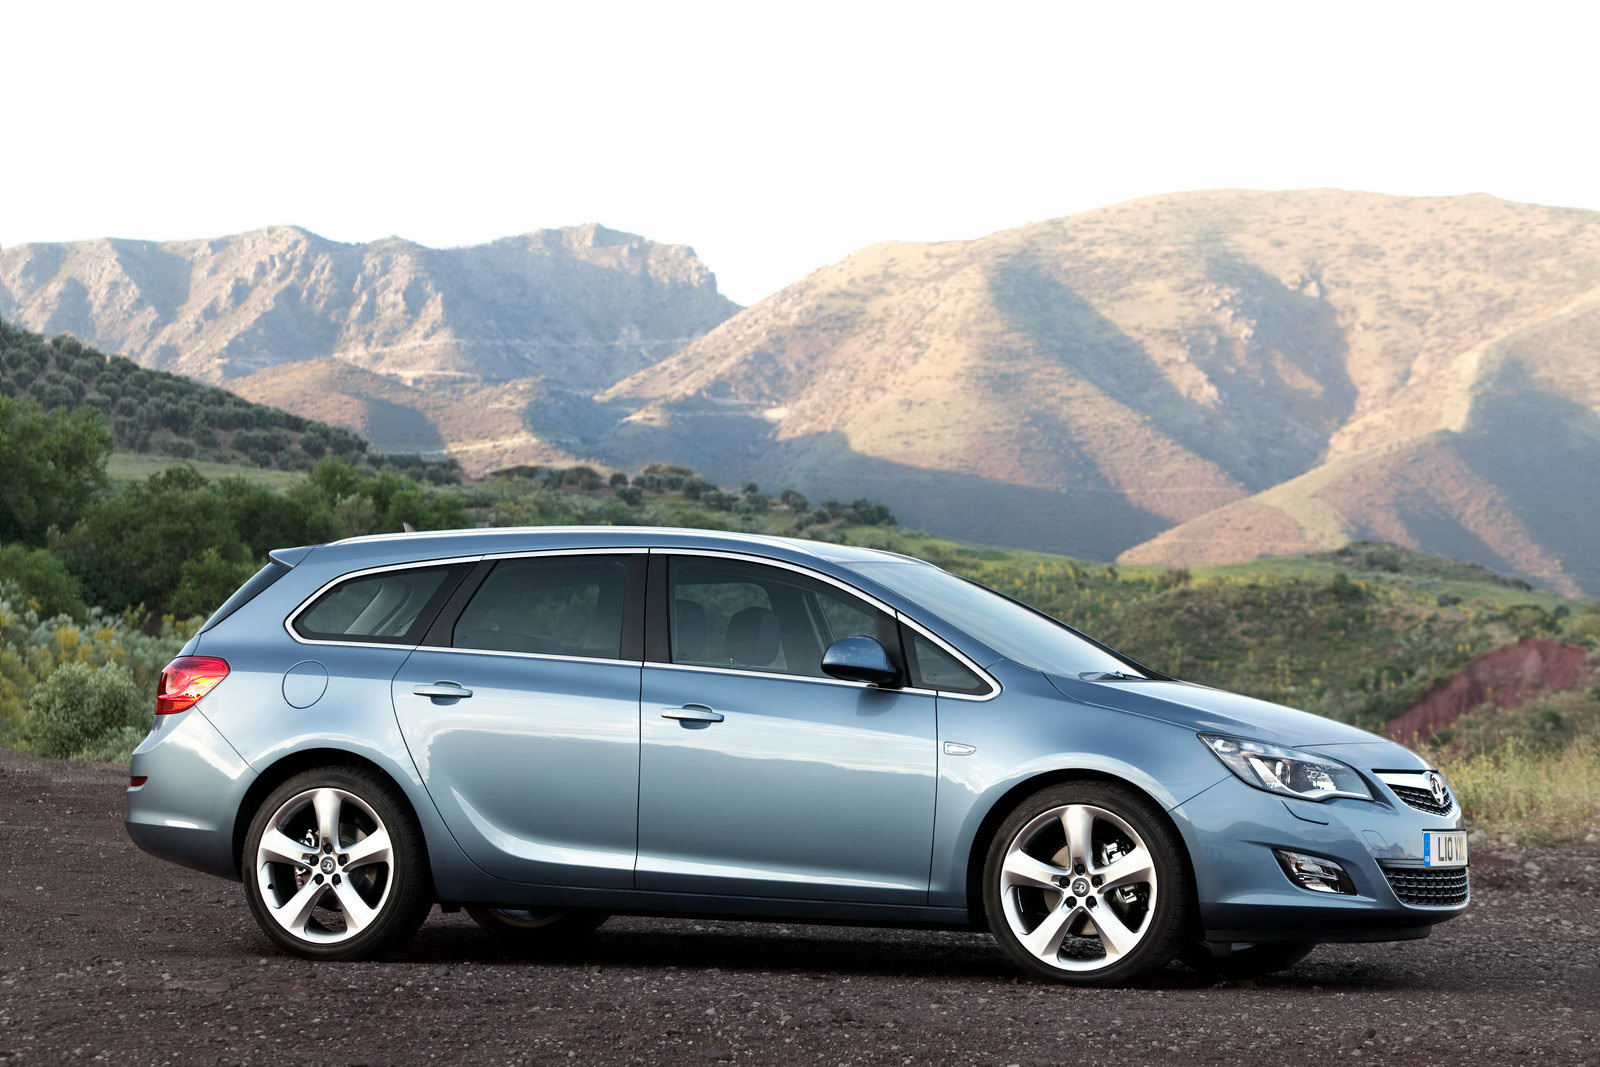 New Opel Astra Sports Tourer Unveiled - Should Buick Bring it to the States? | Carscoops